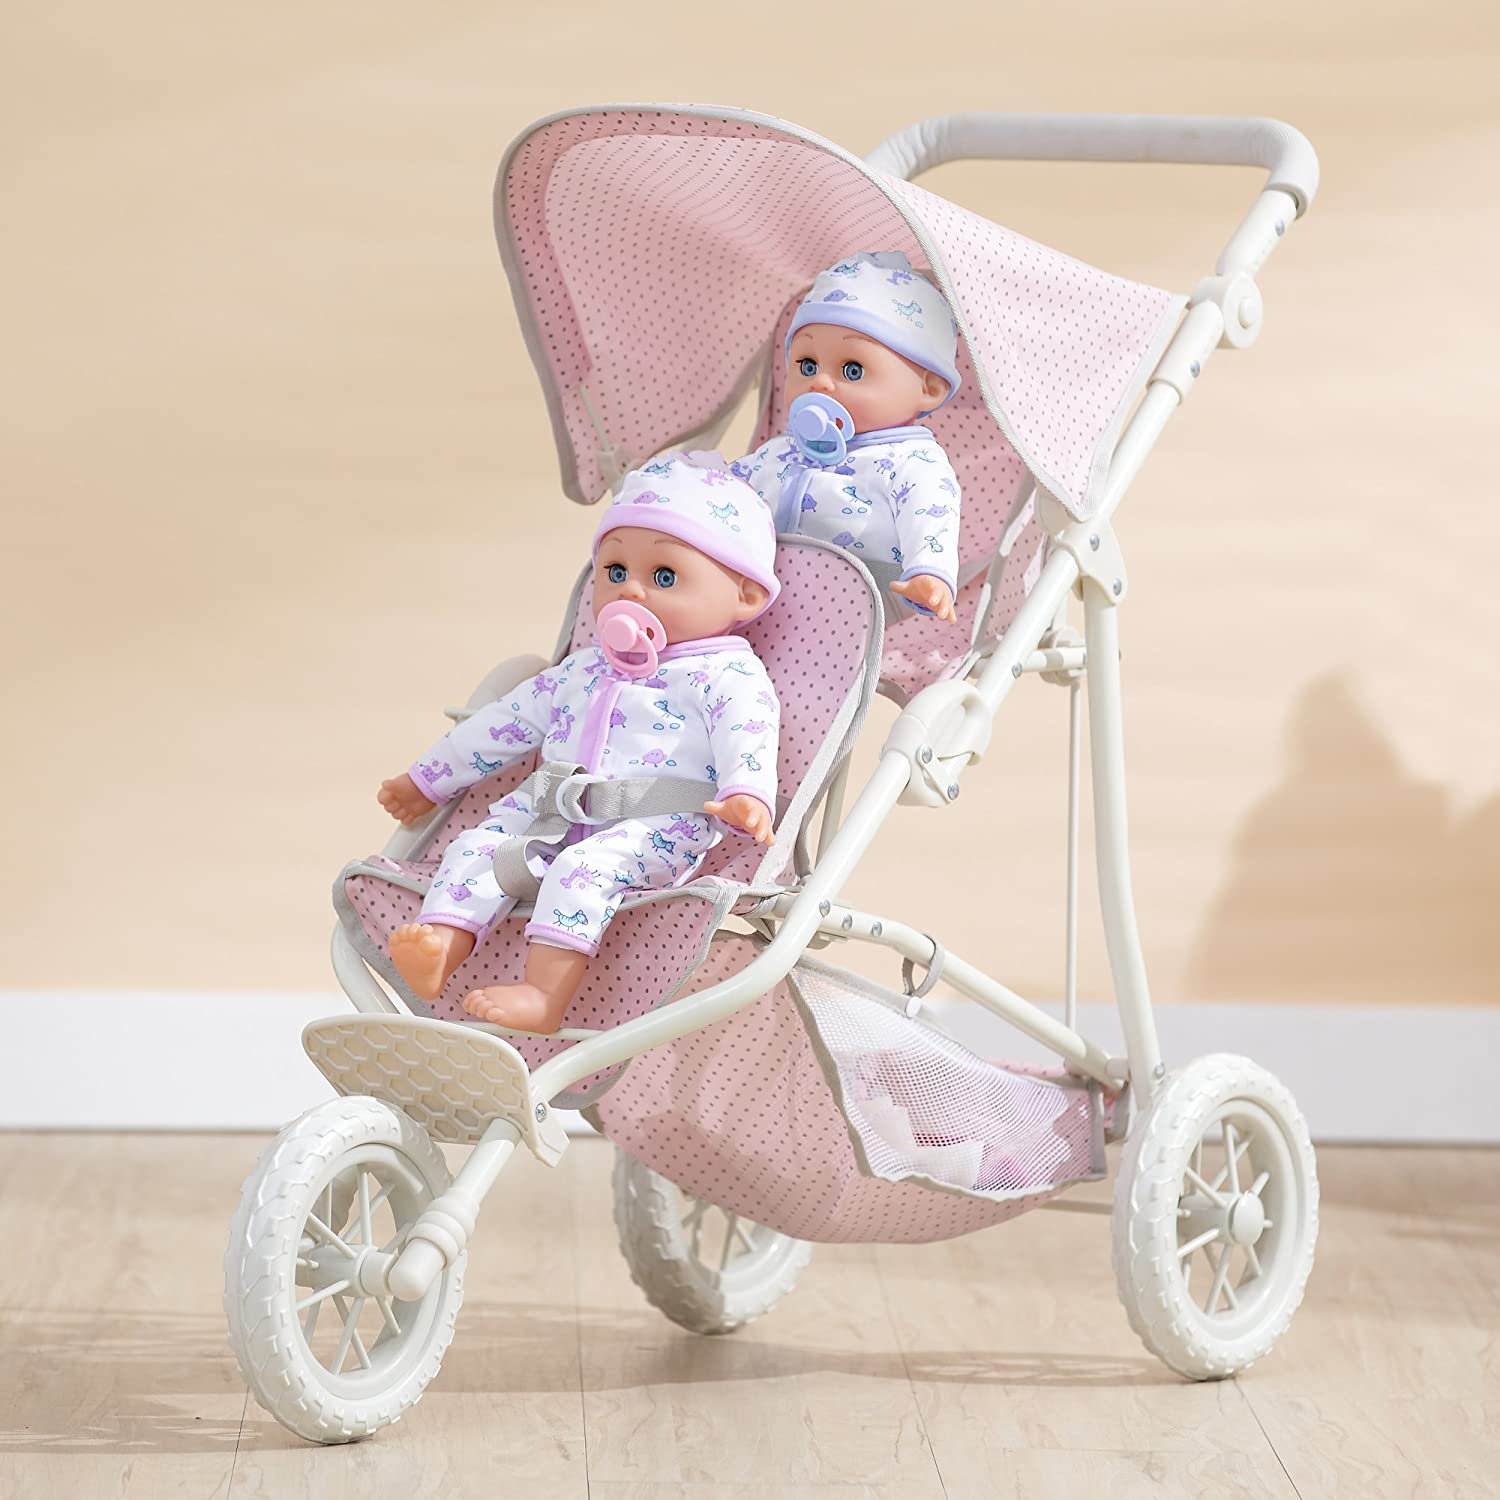 Olivia's Little World - Polka Dots Princess Baby Doll Twin Jogging Stroller , Foldable Double Stroller with Storage Basket and Safety Lock , Pink/Gray